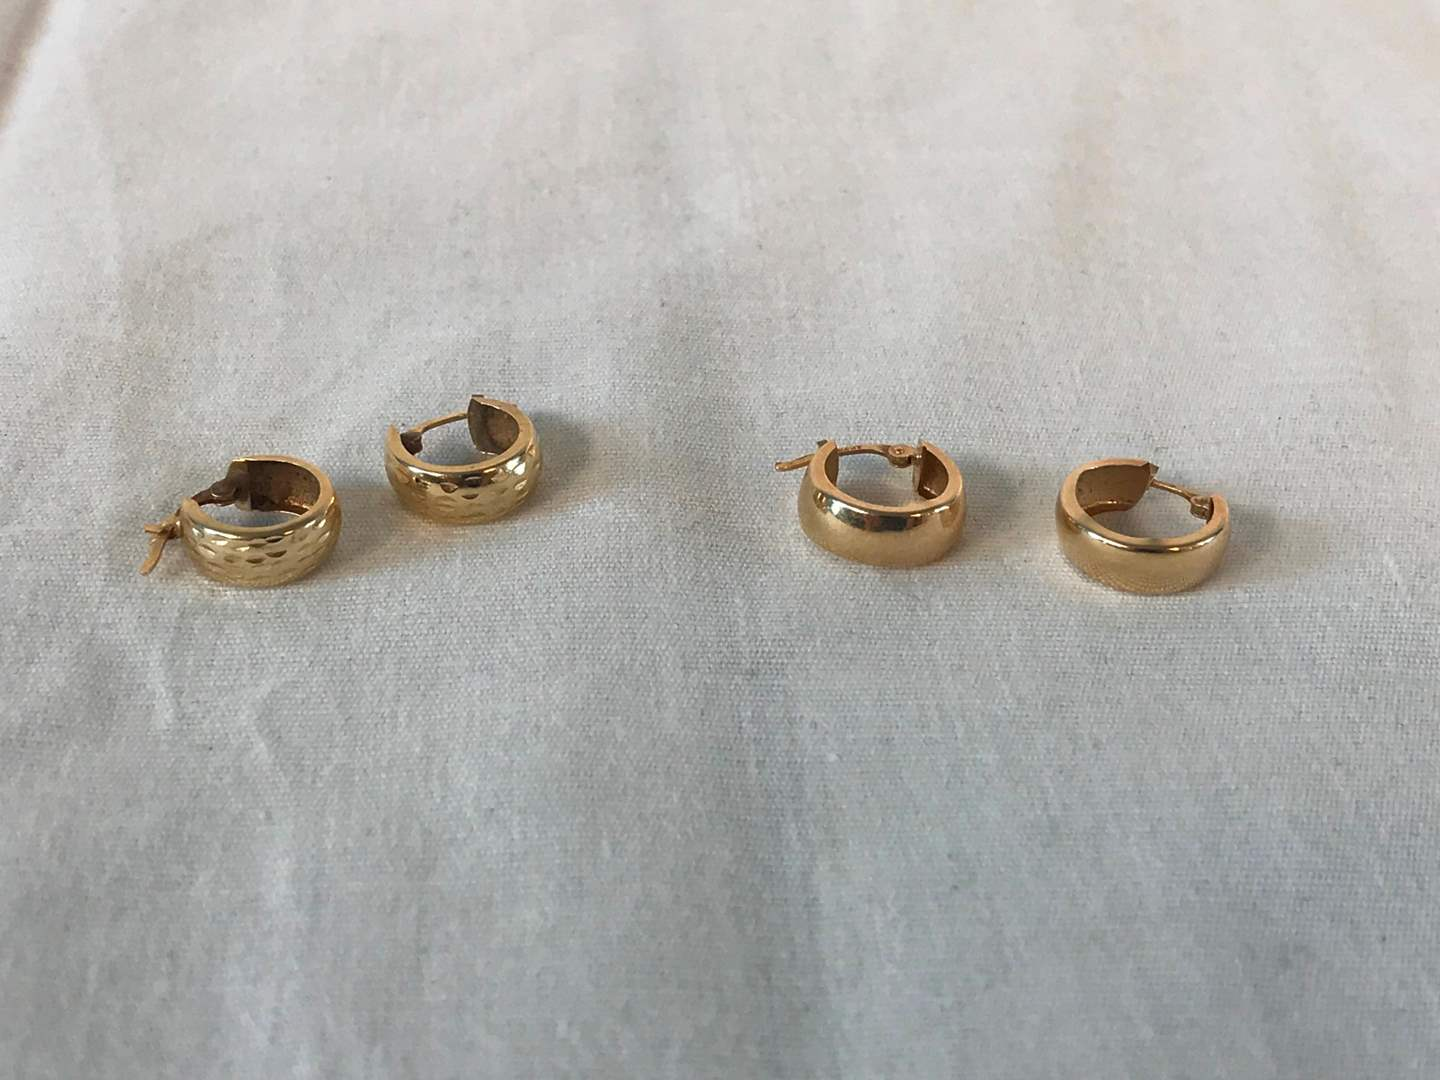 Lot # 269 - 2 Pair of 14k Gold Hoop Earrings - 1.68 grams (Tested). (main image)